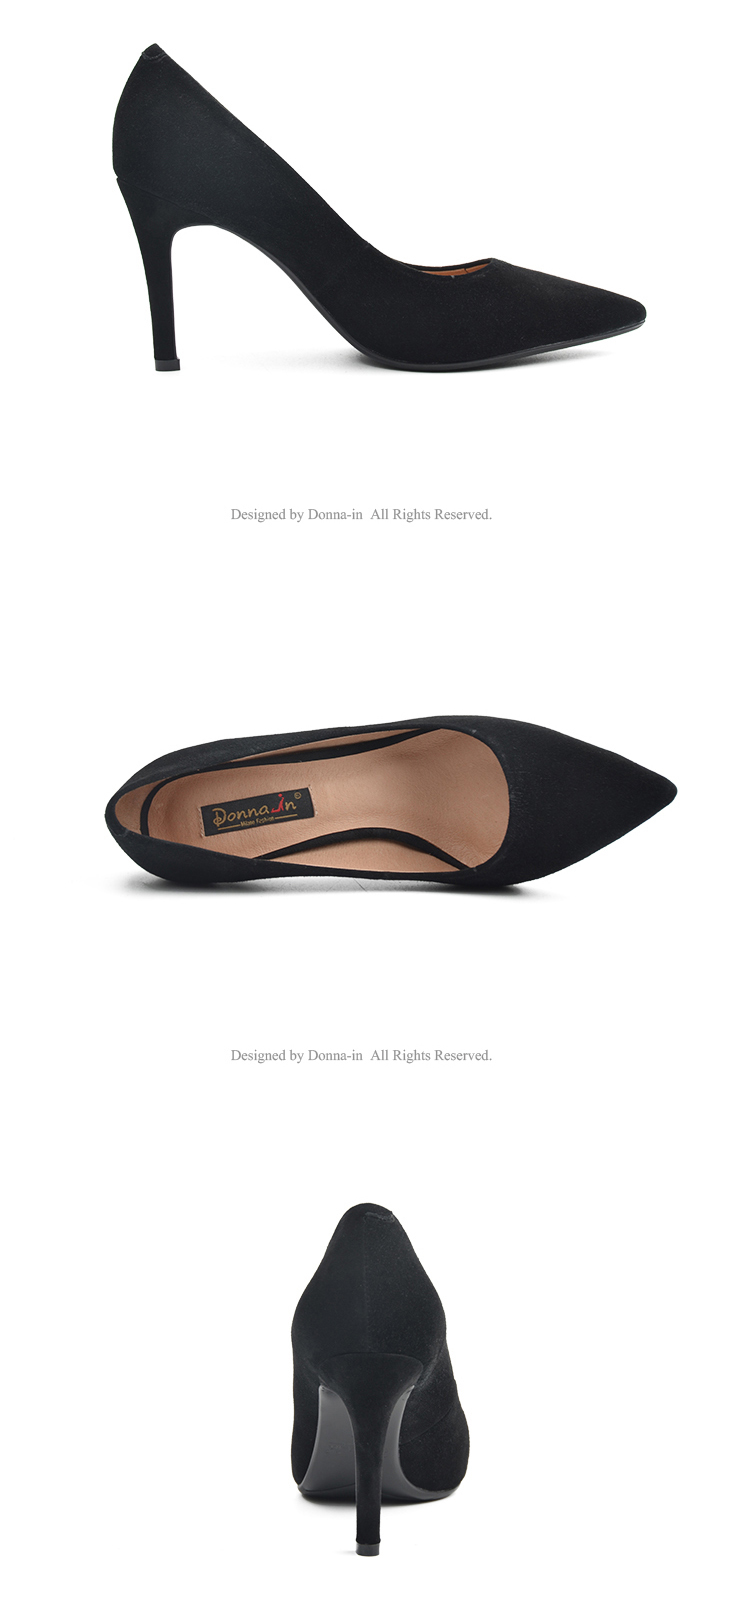 Donna-in 2017 New Style High heels pumps Natural suede leather Sexy Pointed Toe Office Singles Heeled woman Shoes 3255-1 (19)